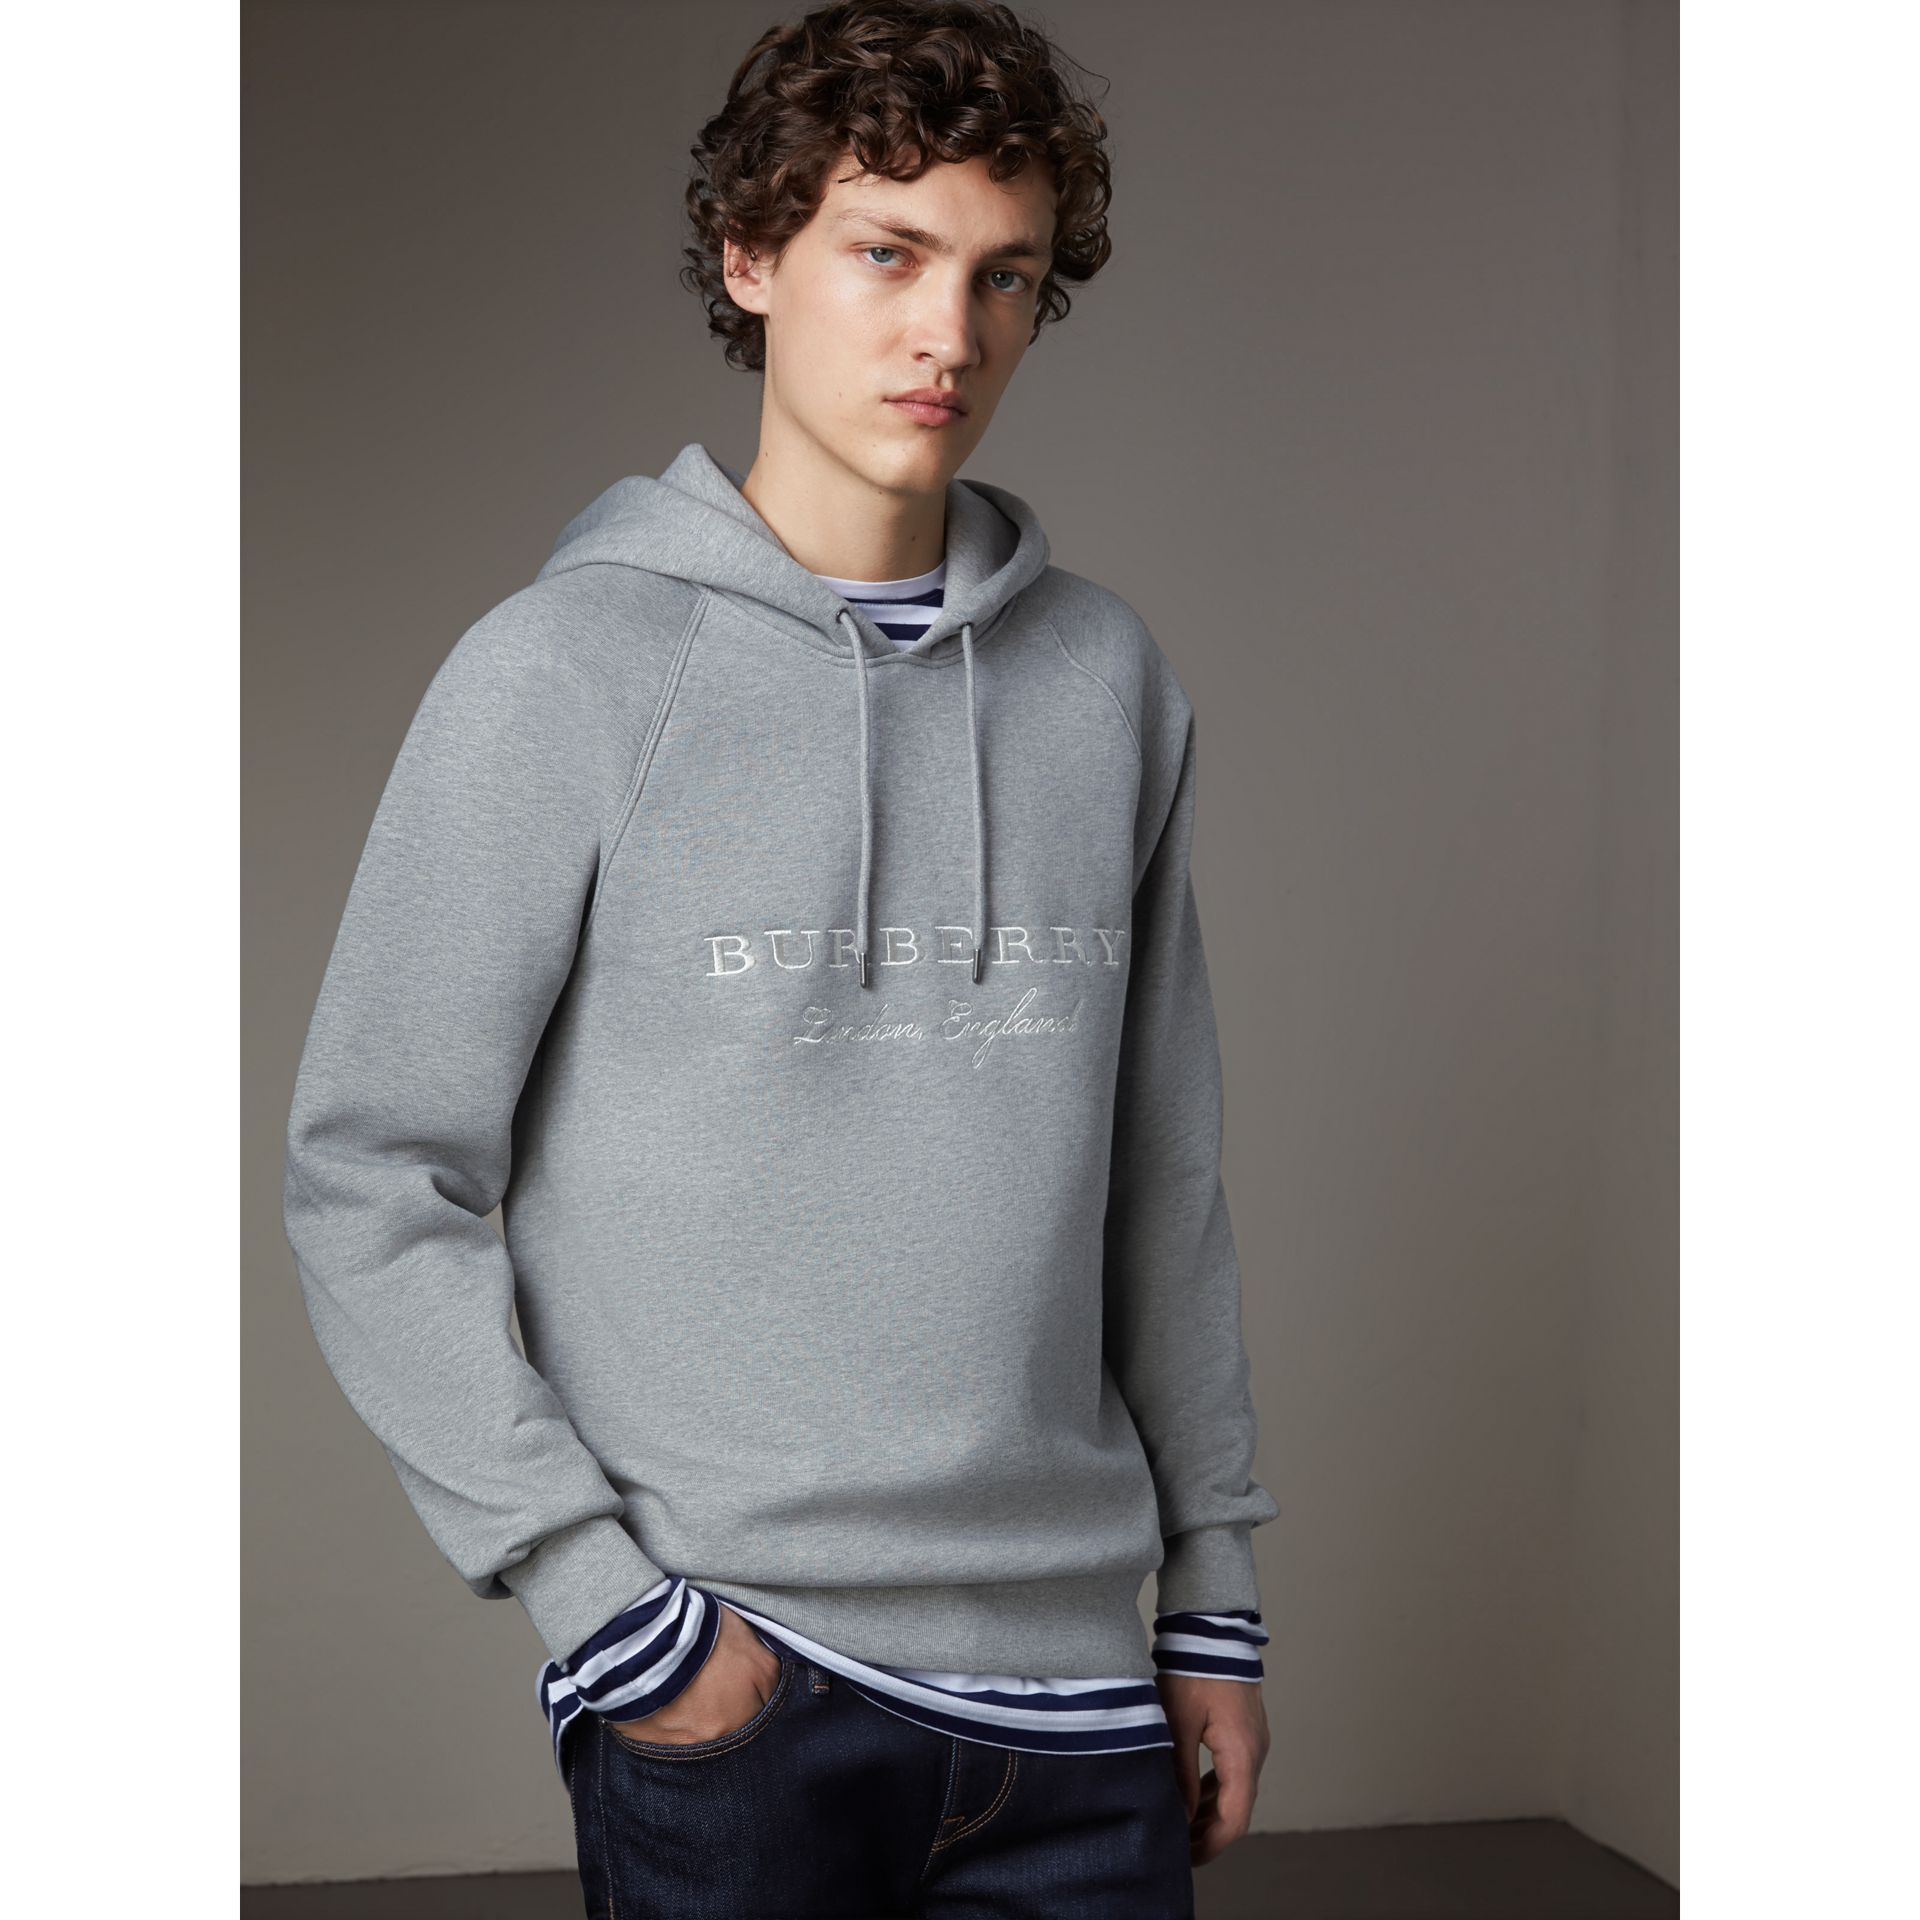 Sweat-shirt brodé à capuche (Camaïeu De Gris) - Homme | Burberry - photo de la galerie 5